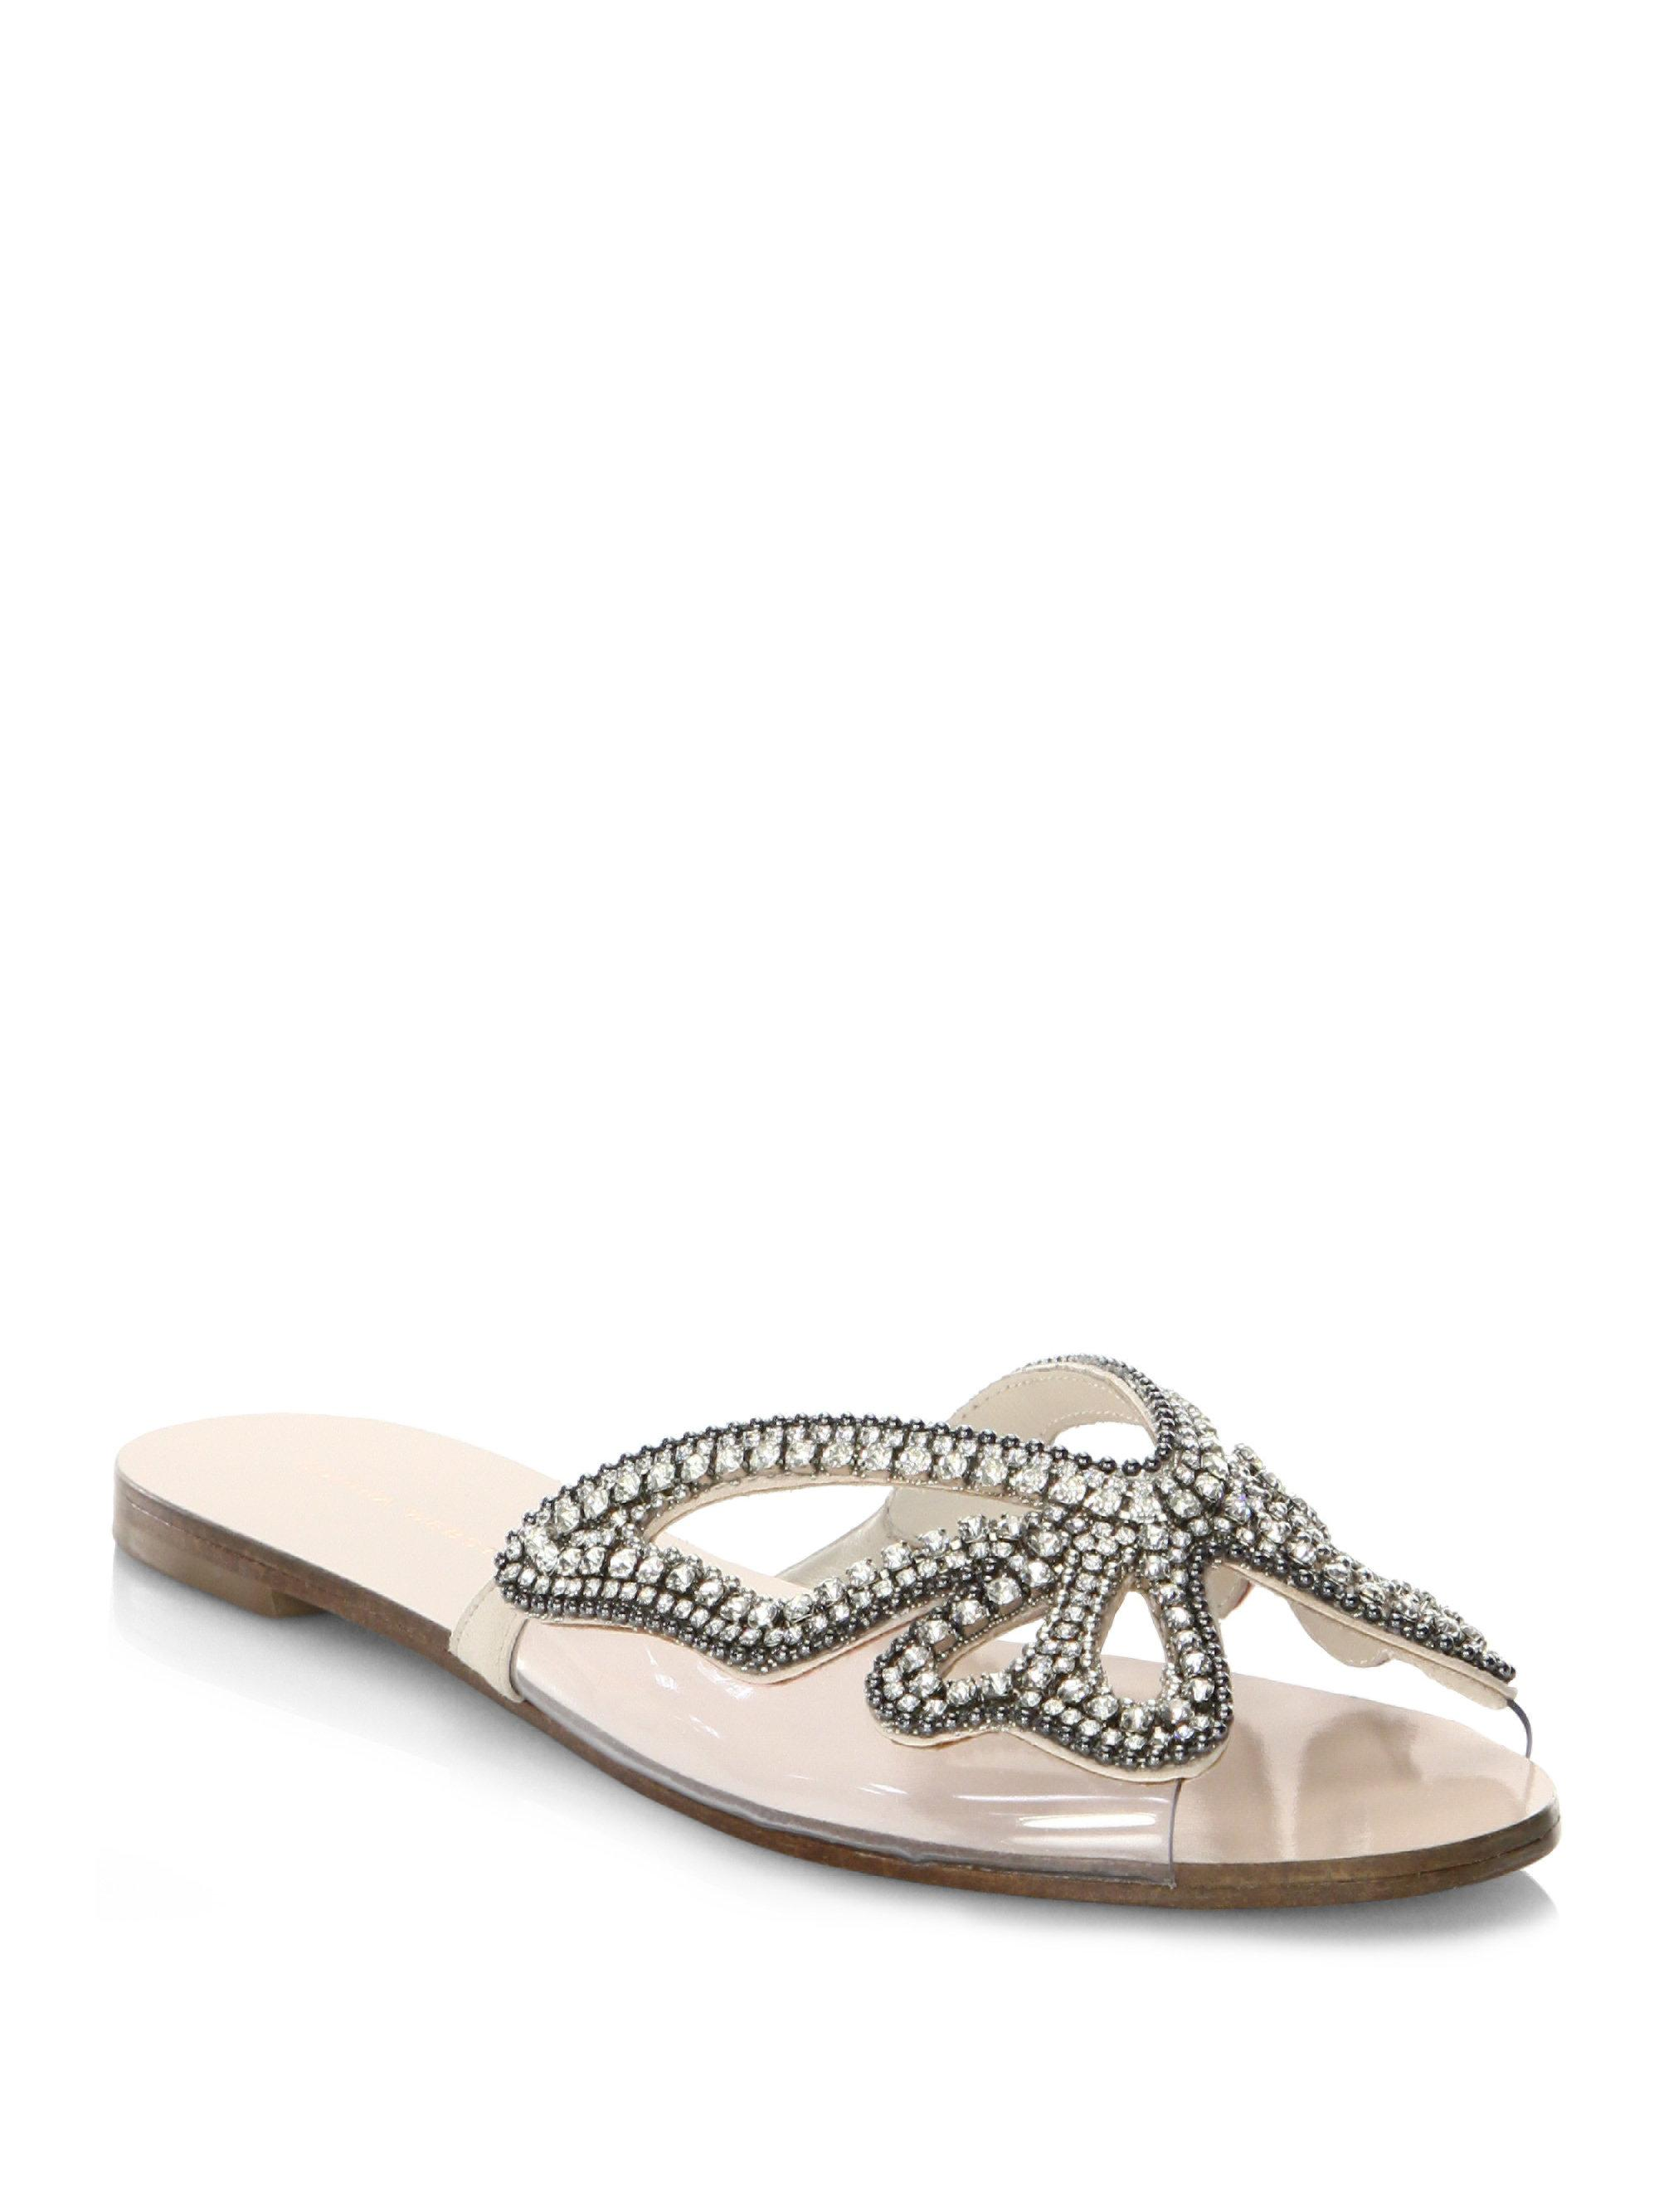 SOPHIA WEBSTER Madame Butterfly Crystal Suede Slides drHhXx87wI